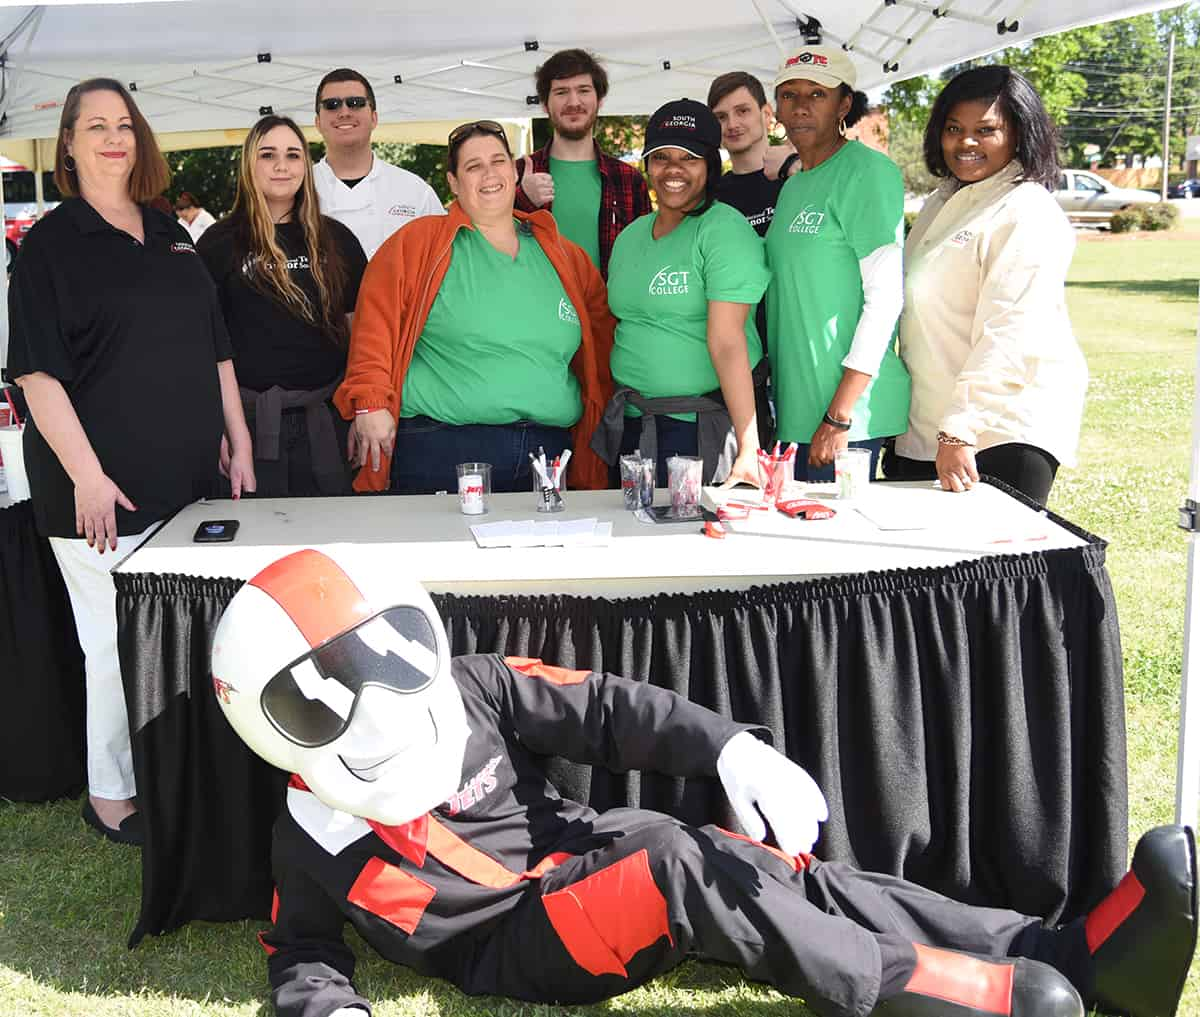 South Georgia Technical College Admissions Coordinator Kari Bodrey and English Instructor Katrice Taylor are shown above with some of the National Technical Honor Society students who helped with the Spring Take Off event.  SGTC's mascot, ACE is also shown with the group.